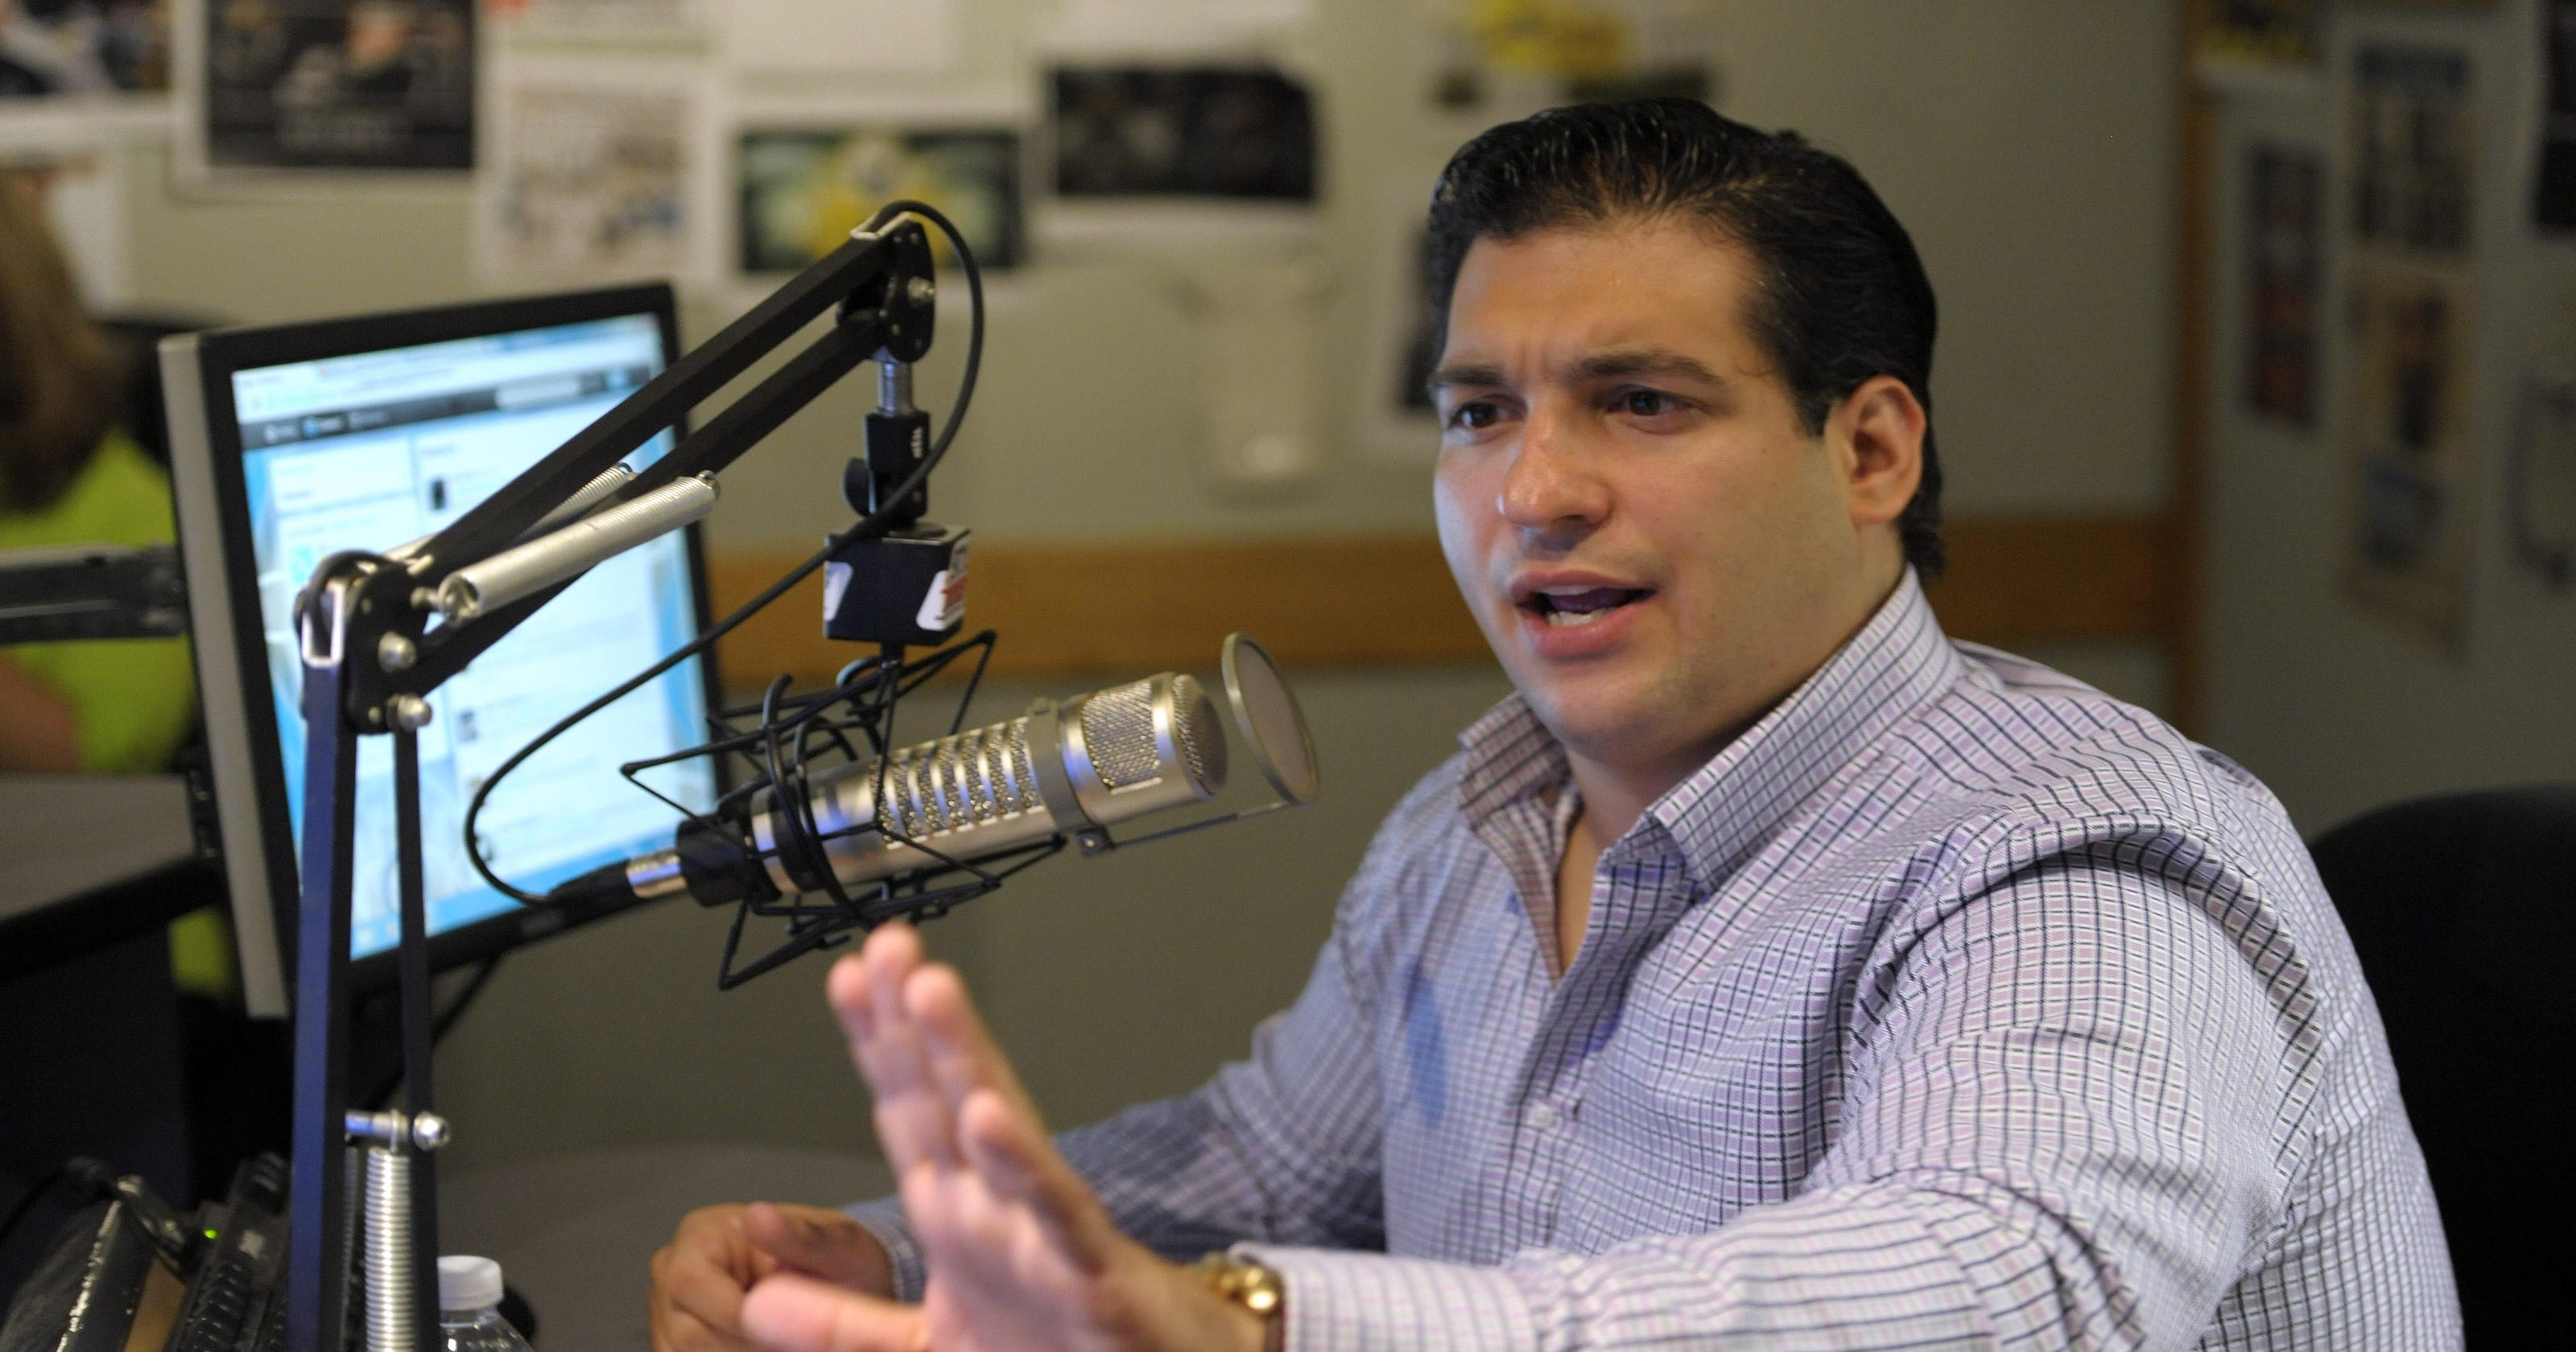 97.1's Mike Valenti signs long-term extension